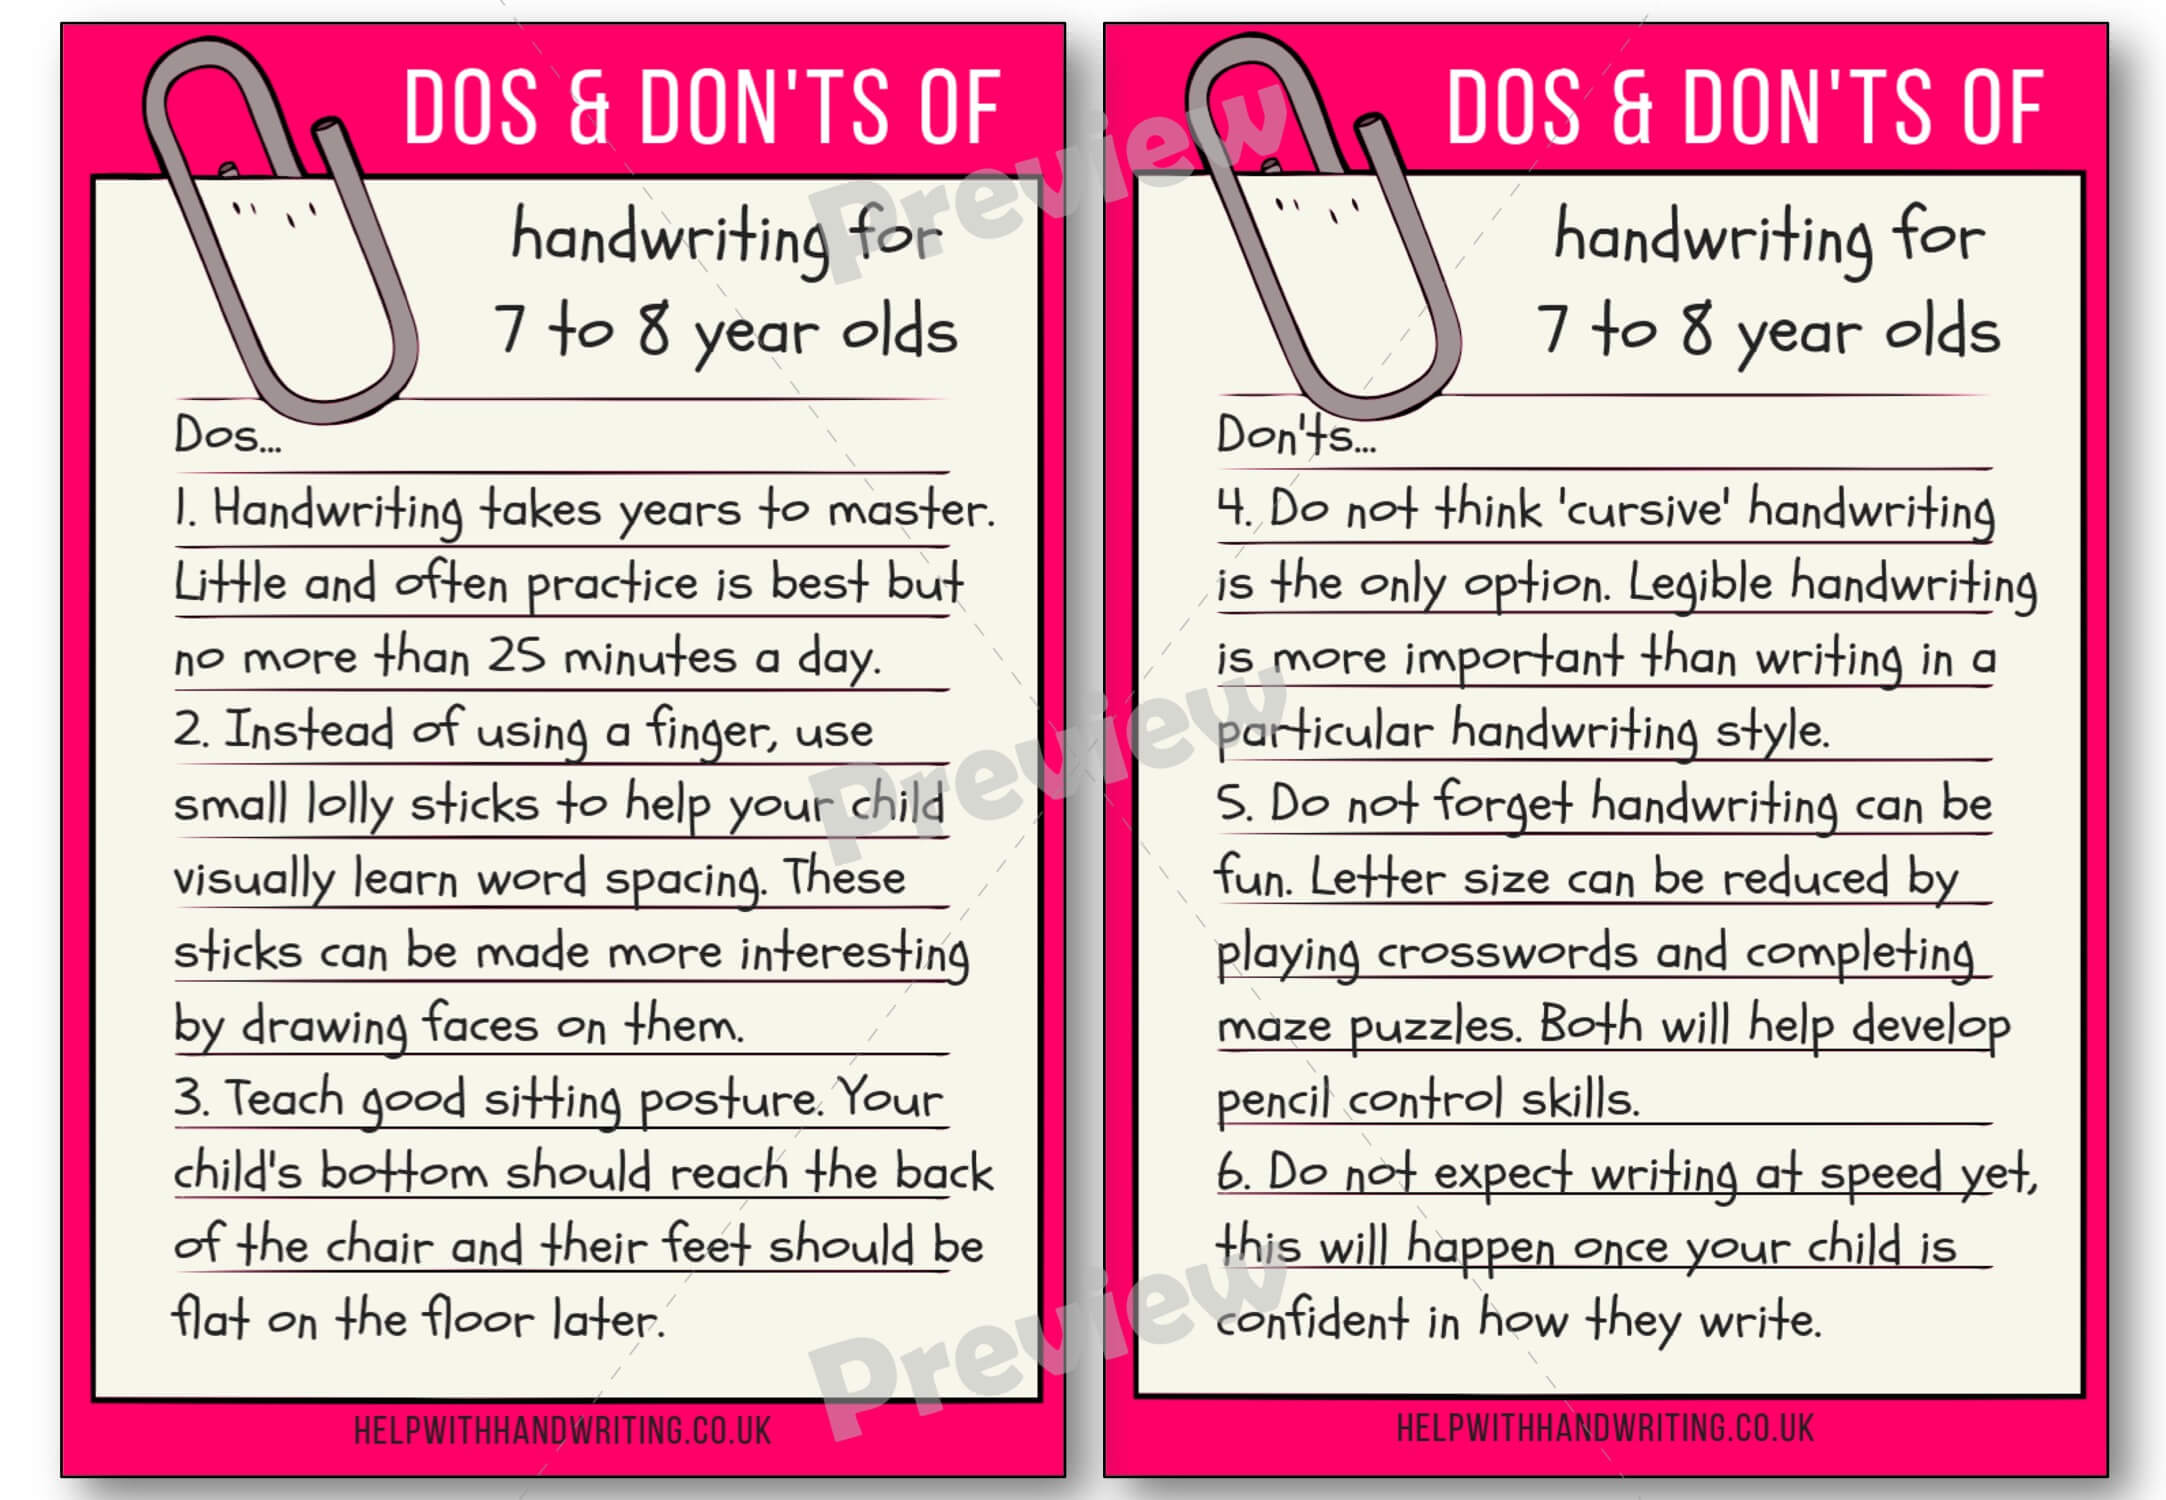 Handwriting dos and don'ts for 7 to 8 years Preview image worksheet